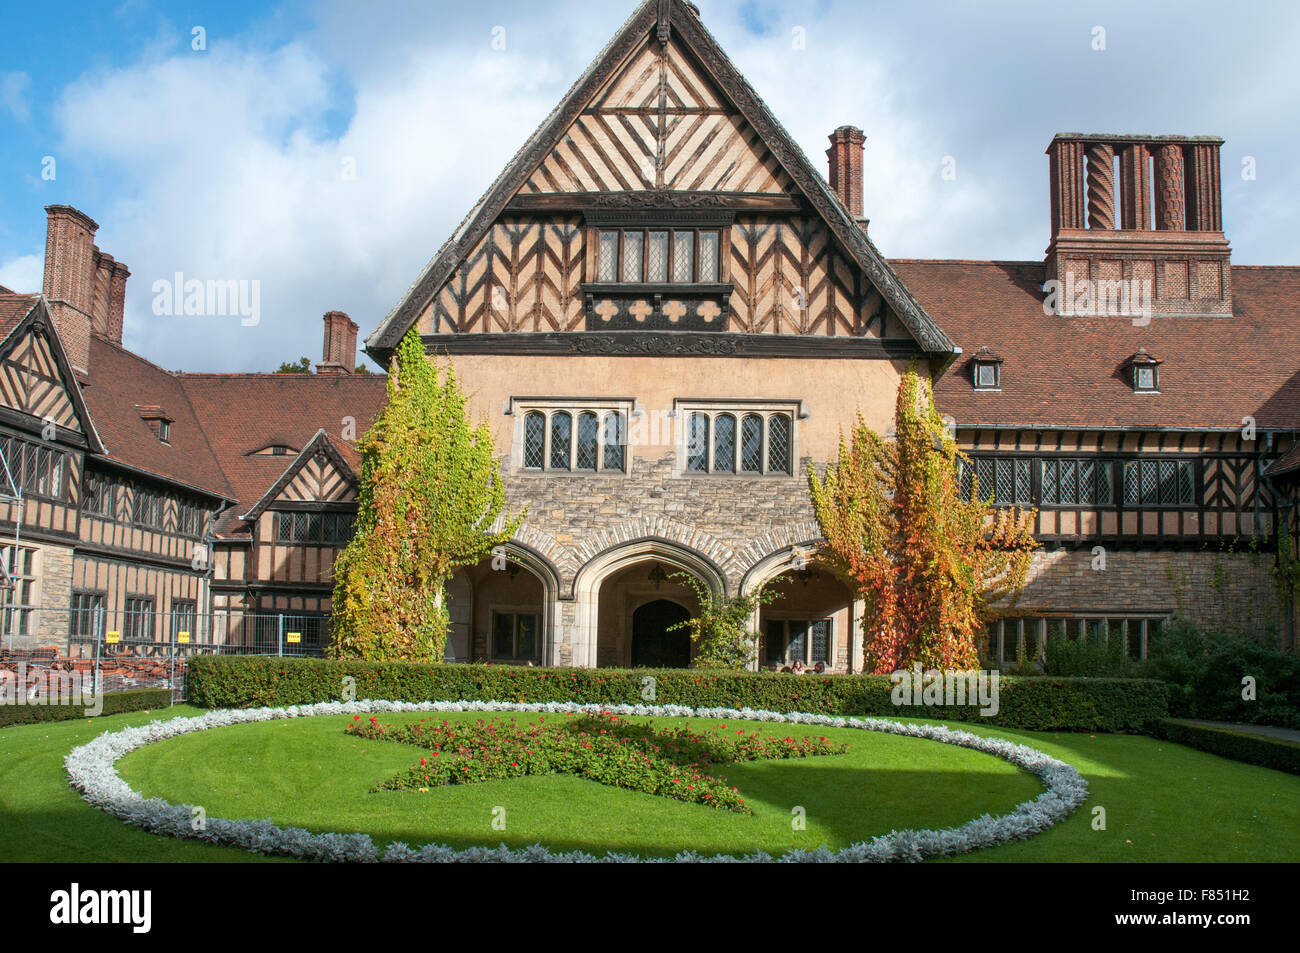 Schloss Cecilienhof in the Neuer Park, Potsdam, venue for the 1945 Potsdam Conference that divided occupied Germany. - Stock Image